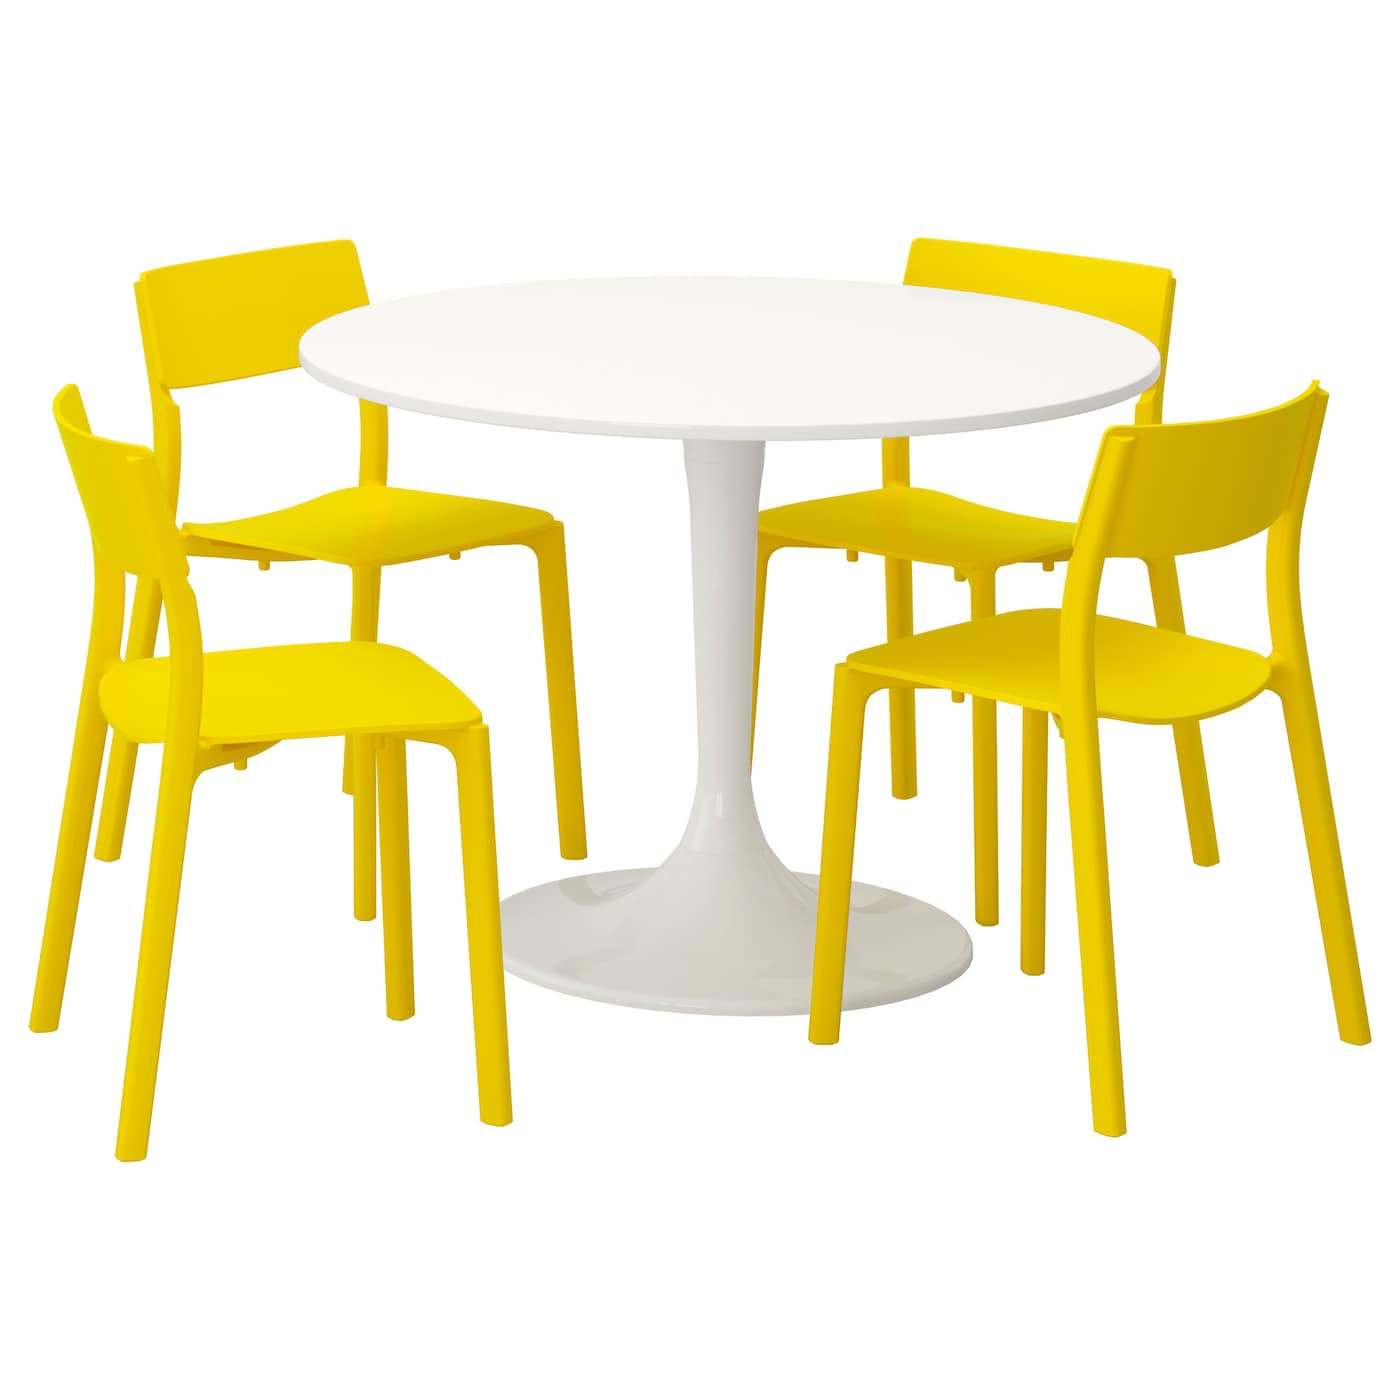 4 seater dining table chairs ikea for Ikea dining table and chairs set